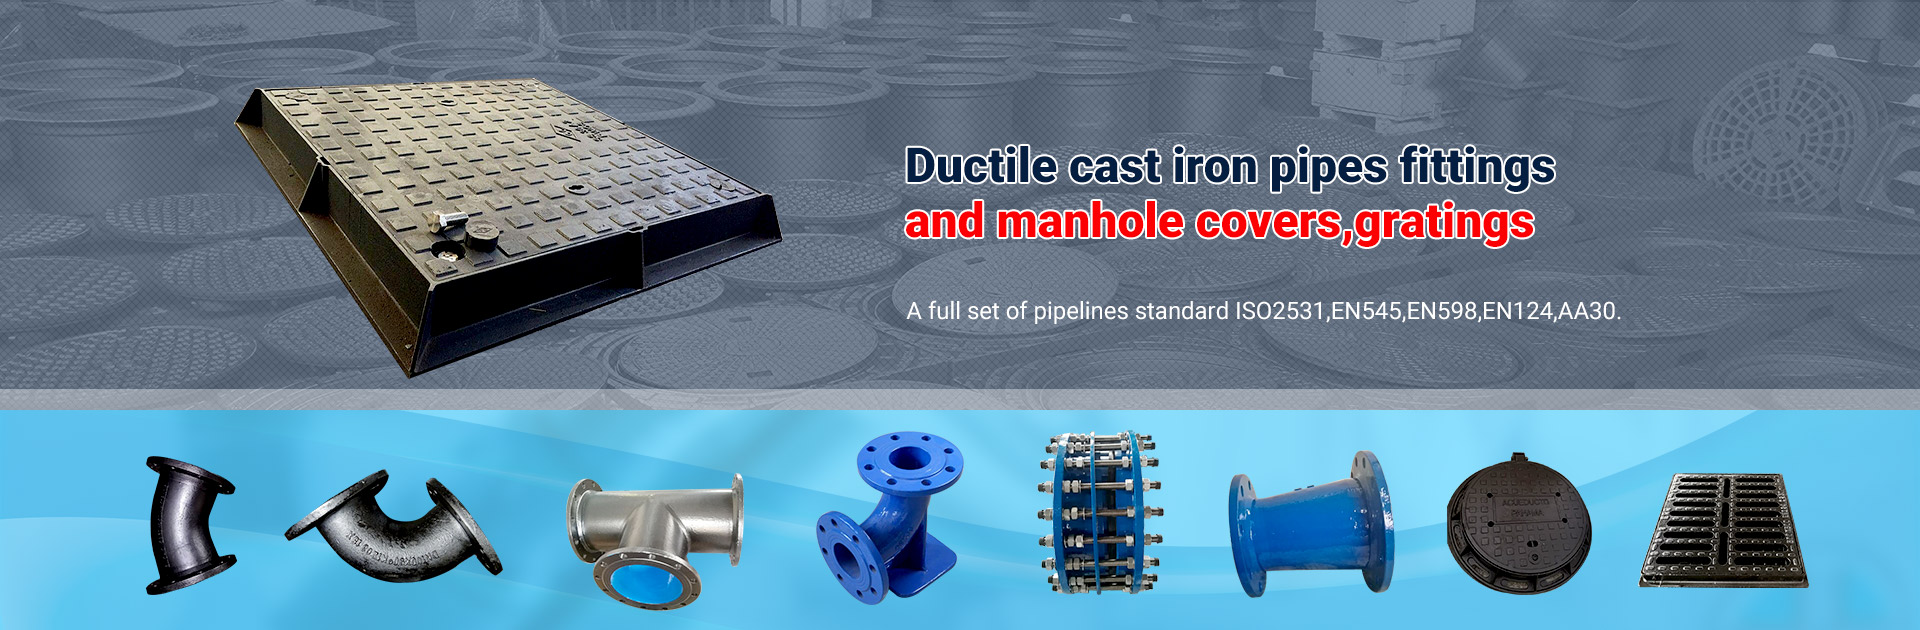 STAINLESS STEEL COUPLINGS & GRIP COLLARS